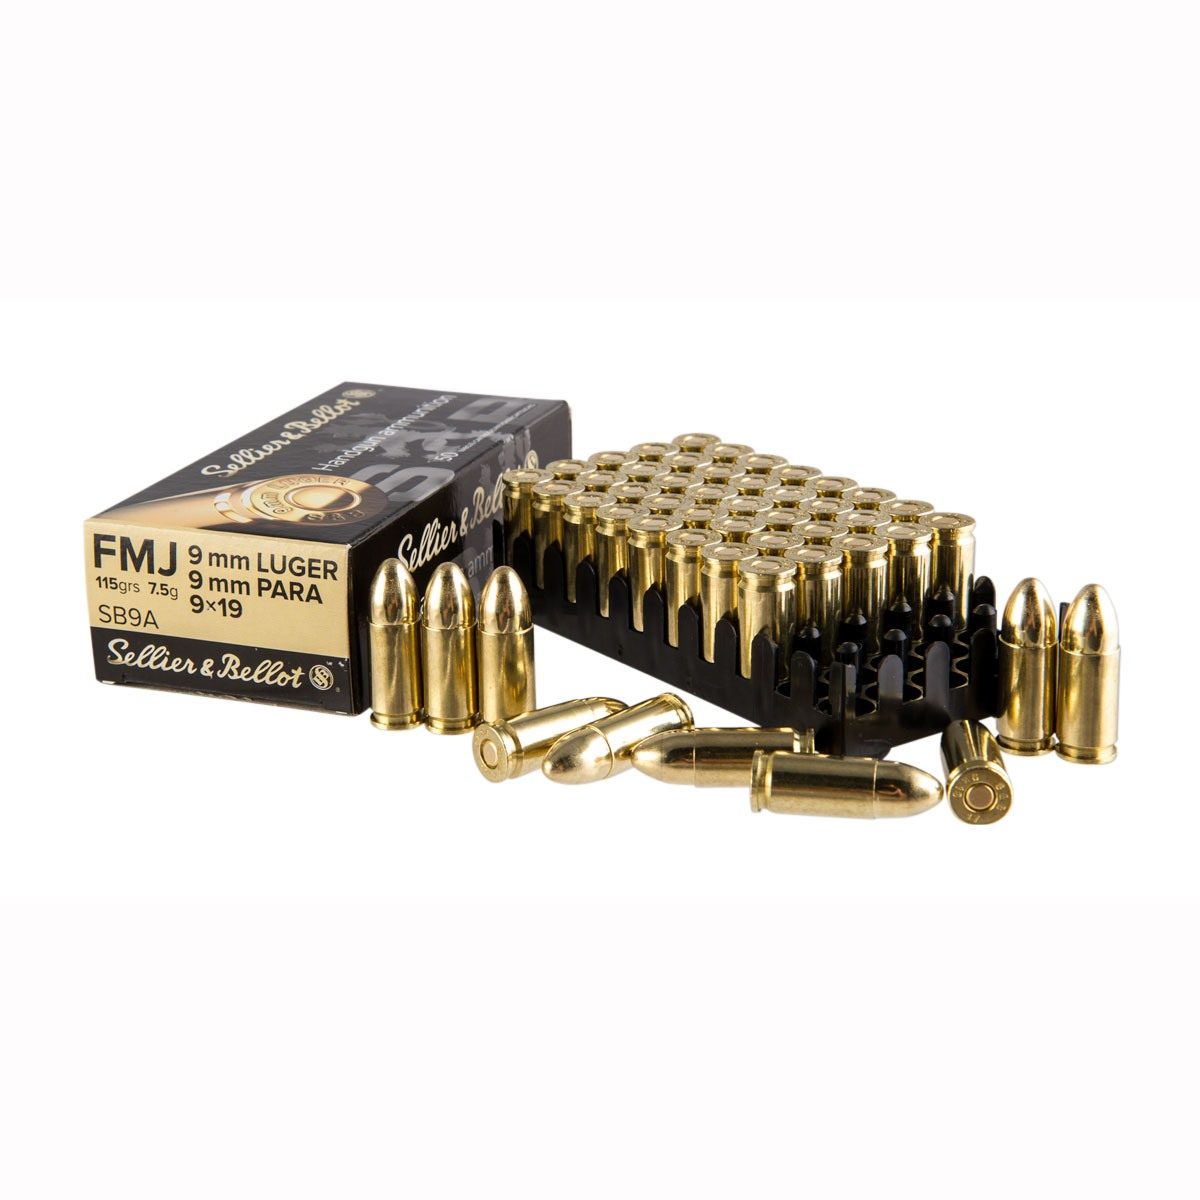 S&B 9mm Luger 124gr Full Metal Jacket 1,000/Case at $218.99 (21.9cpr) also $20 off with code WC2